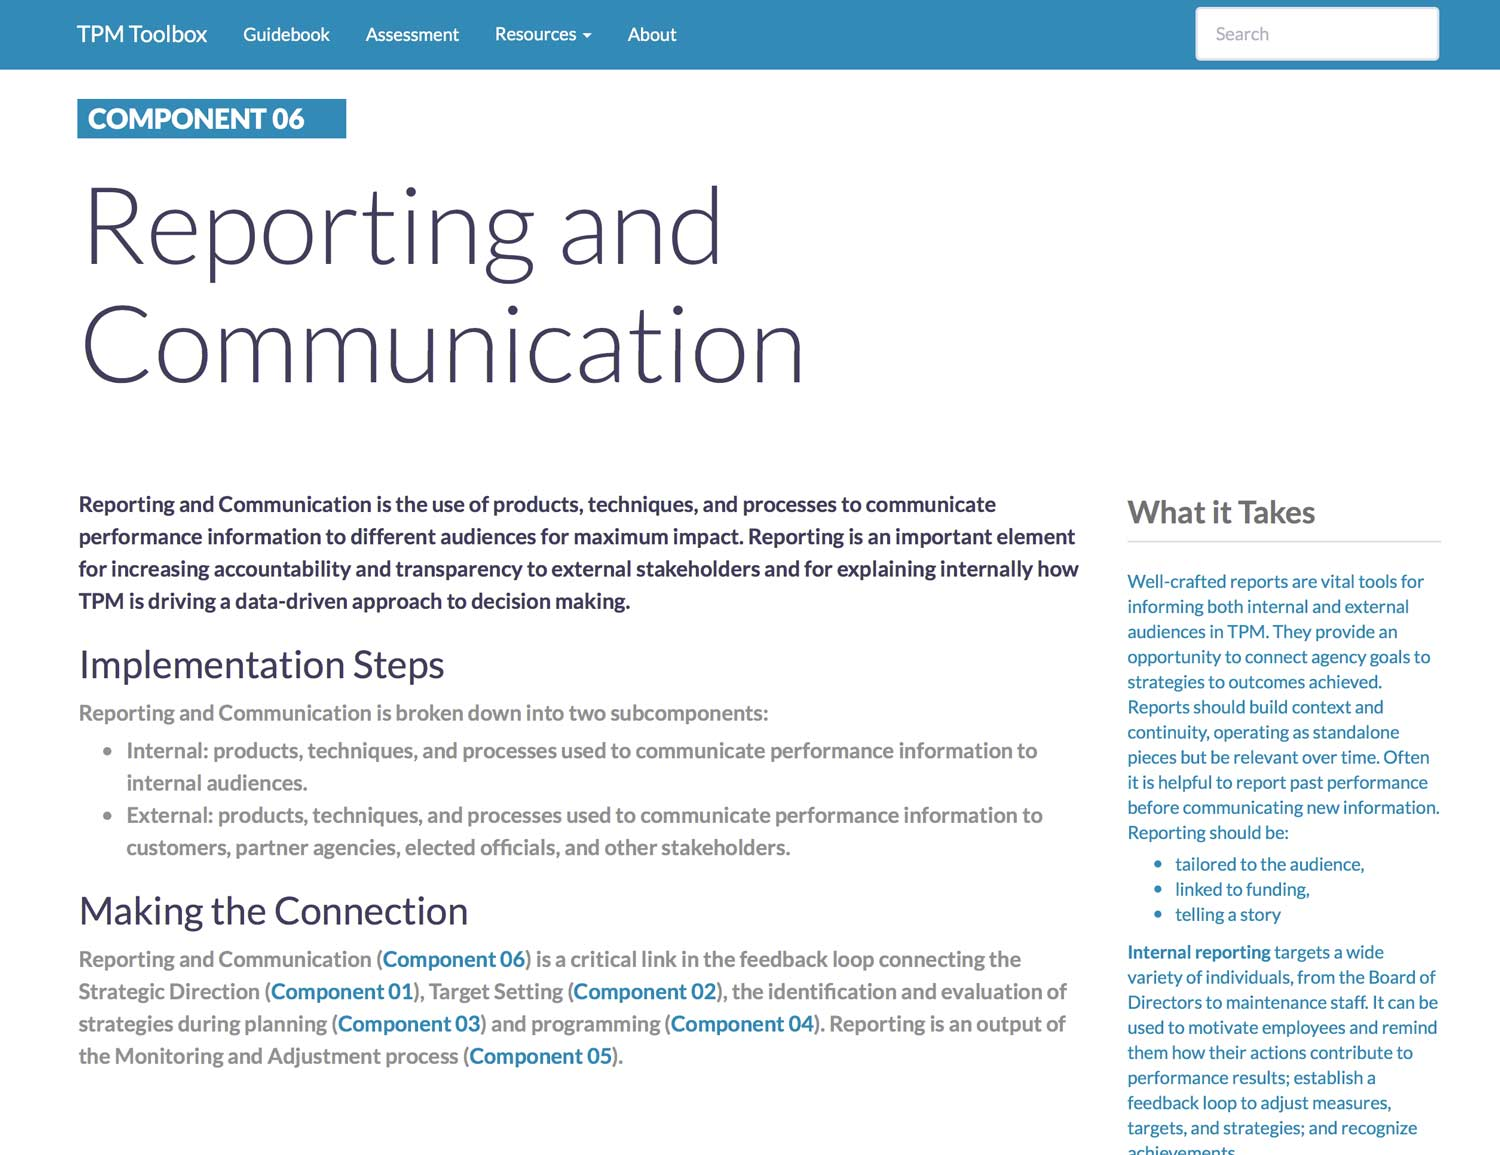 Thumbnail image of Component 06 Summary webpage. Reporting and Communication is the use of products, techniques, and processes to communicate performance information to different audiences for maximum impact.